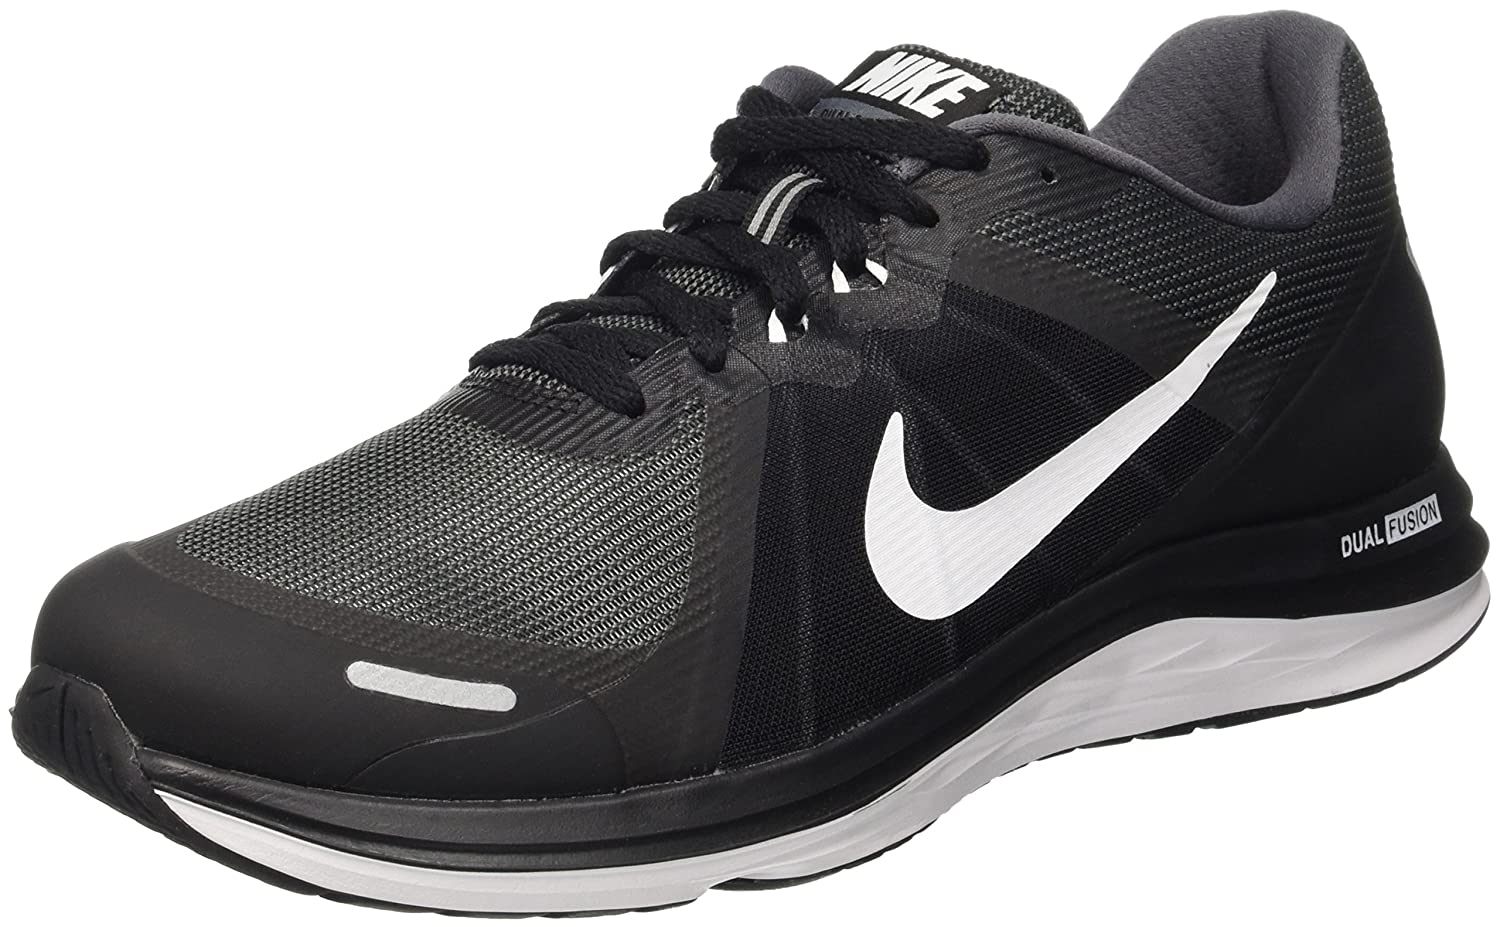 Nike Men's Dark Grey White Tri Fusion Run Performance Running Shoes black Sale Events